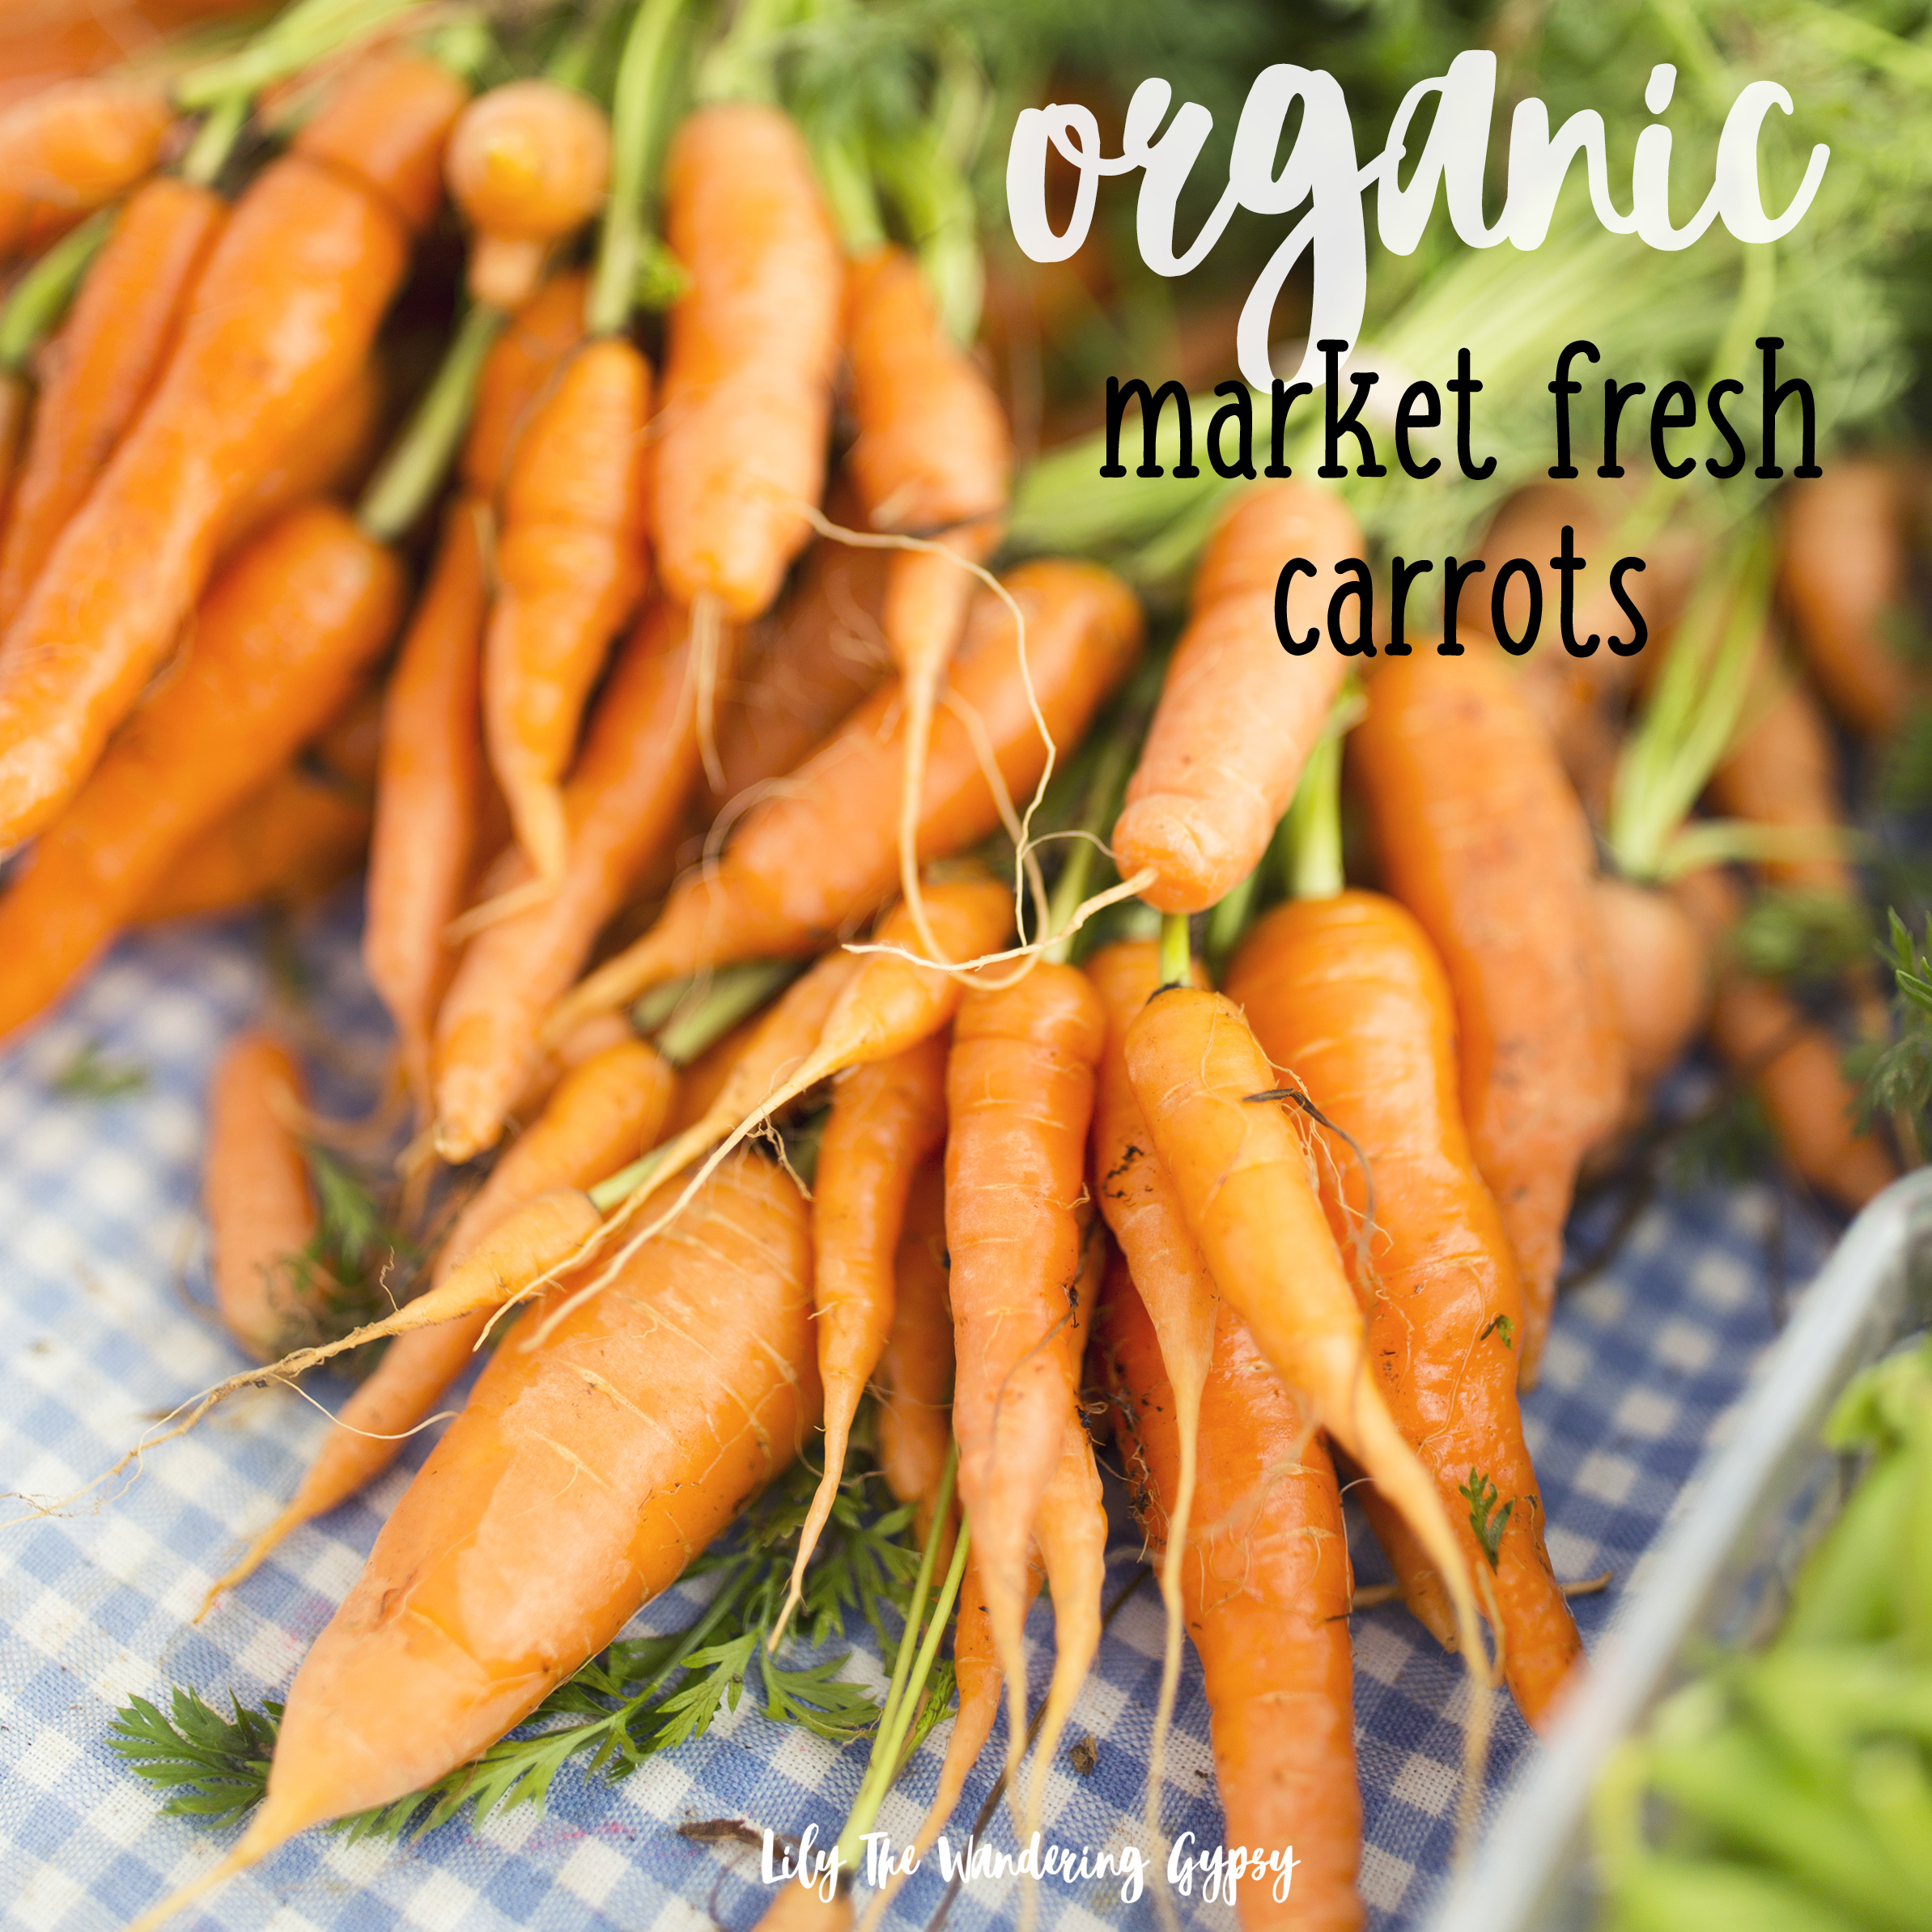 Organic Market Fresh Carrots from Countrysprout Organics